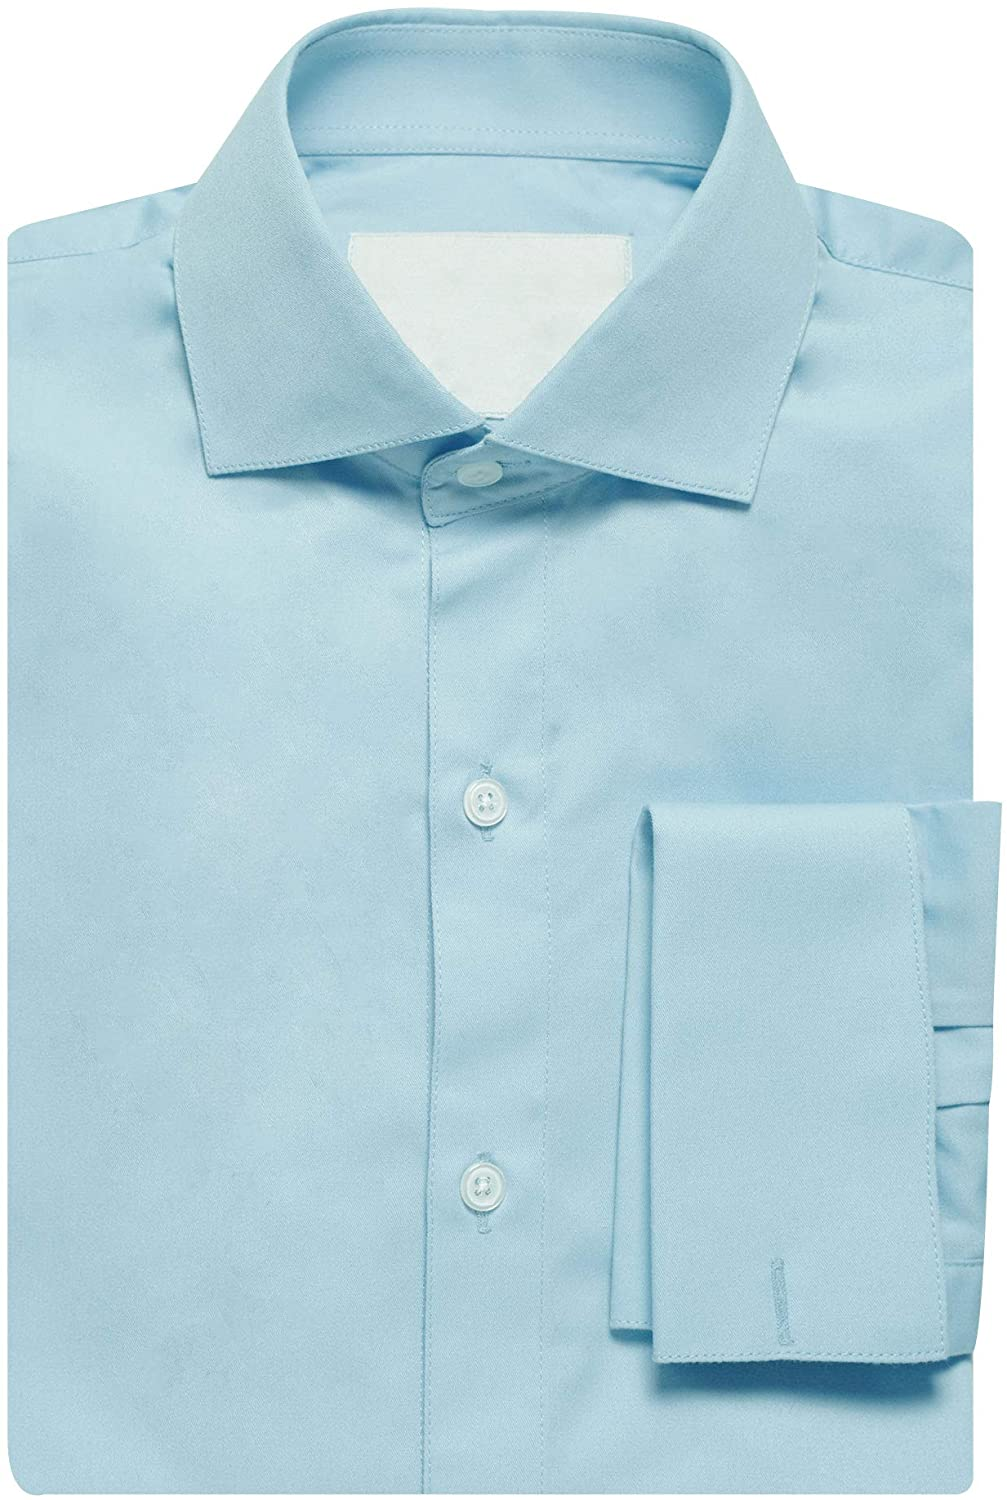 Mens Shirts Style no.15365 Light Blue All-Season Pinpoint